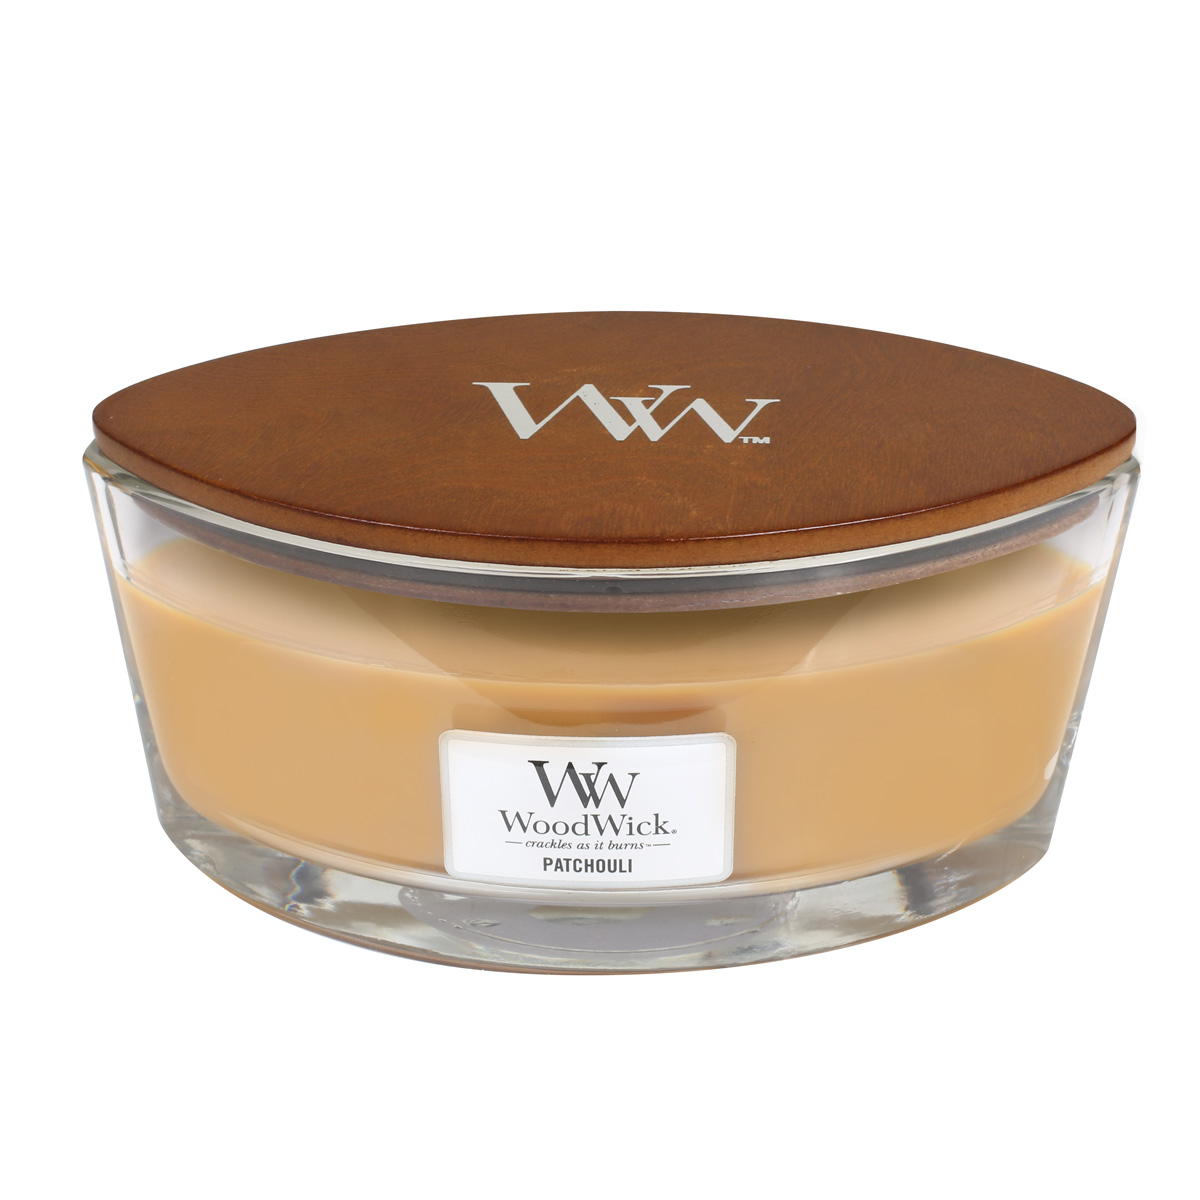 _DISCONTINUED - Patchouli WoodWick Candle 16 oz ...